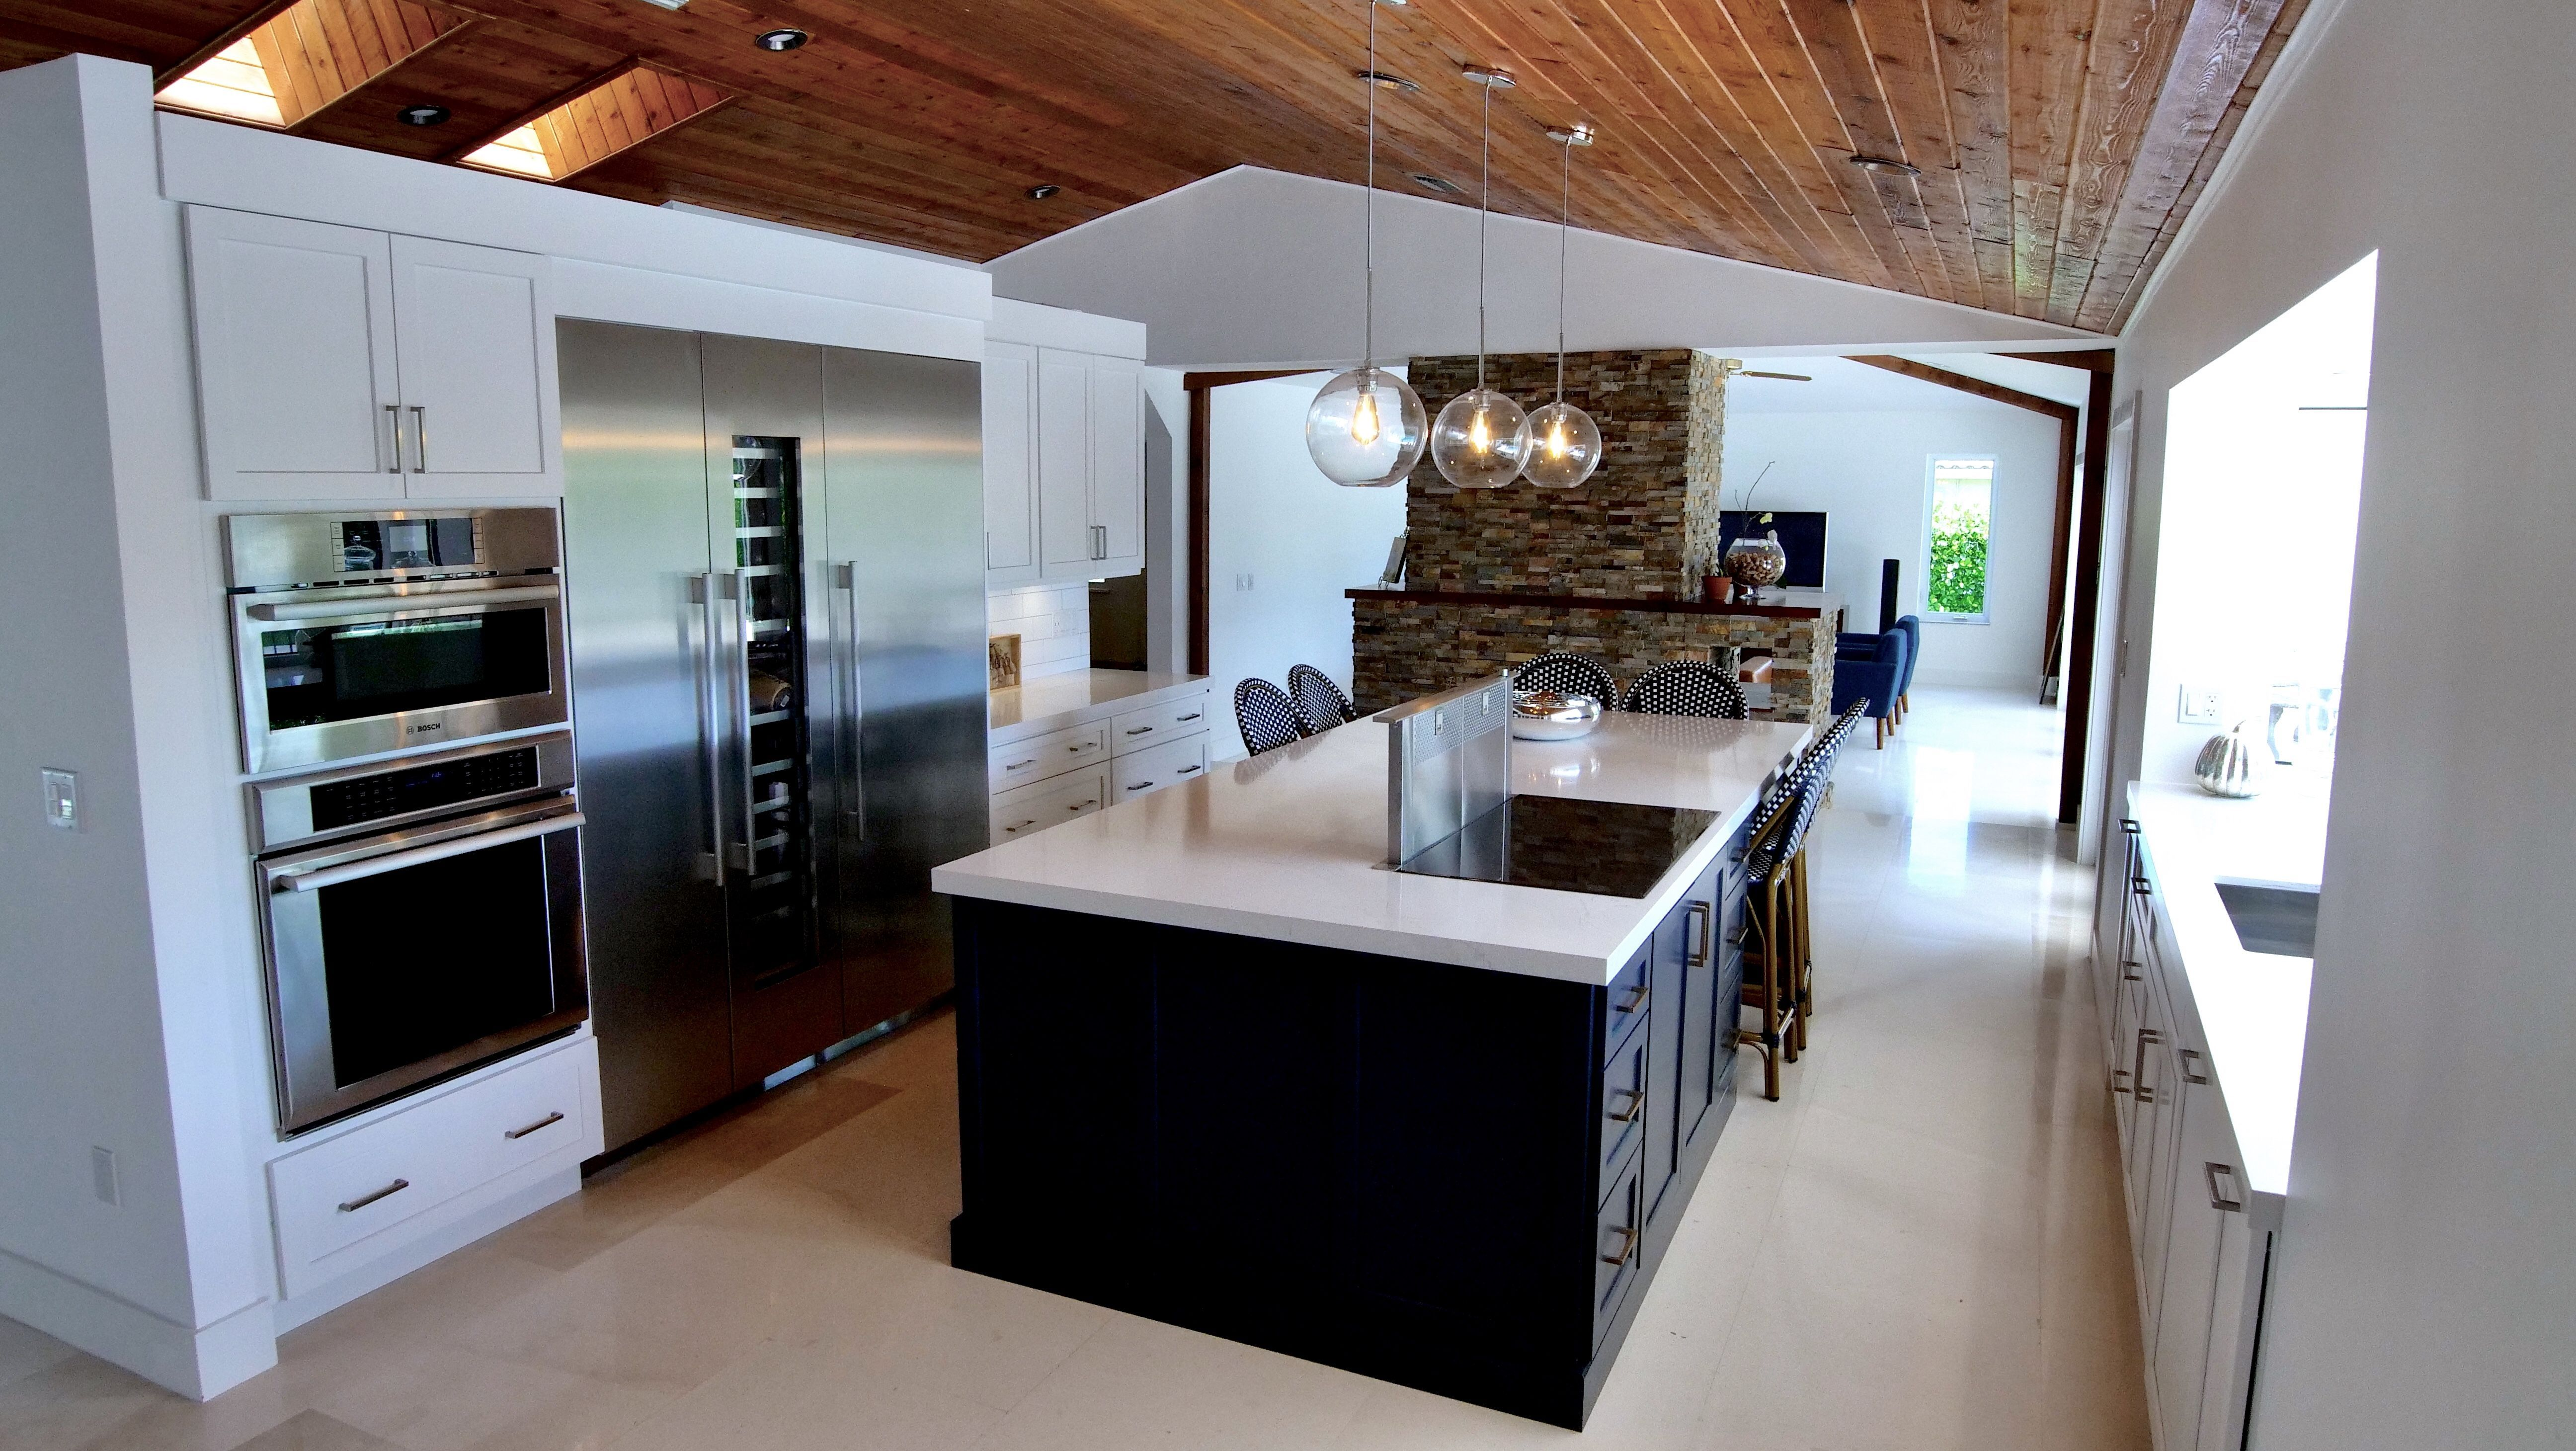 The Design Of This Kitchen Works So Well With The House Call Us At 305 234 1990 In 2020 Kitchen Modern Kitchen Kitchen Words